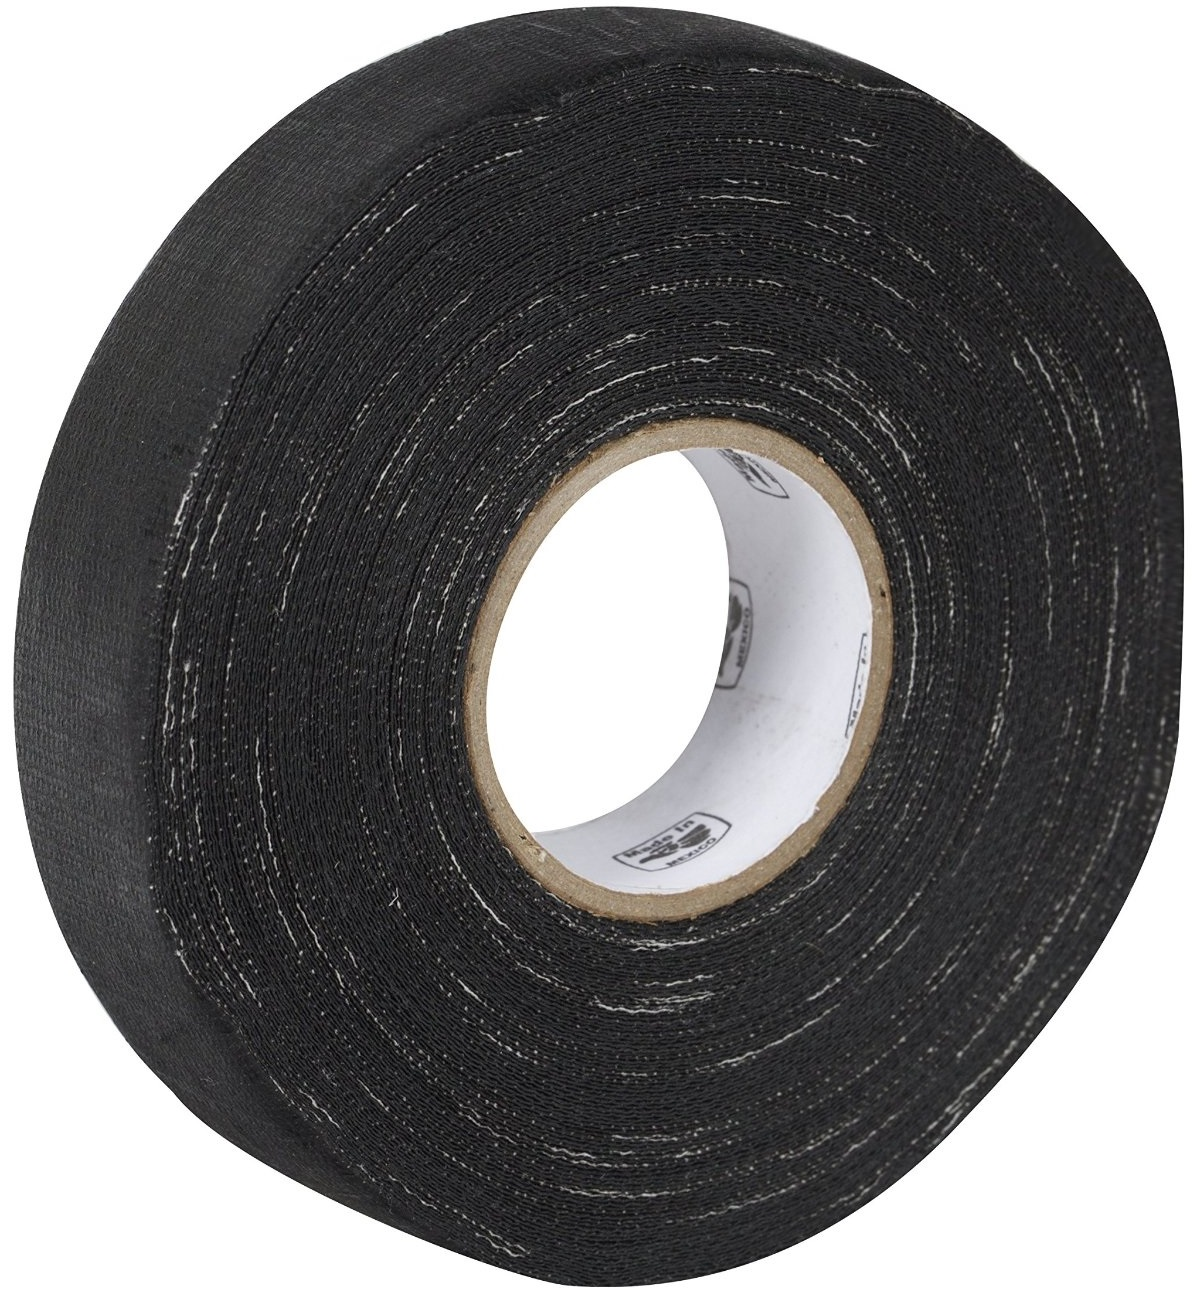 Shurtech Brands 04108 3/4-Inch x 60-Ft. Friction Tape